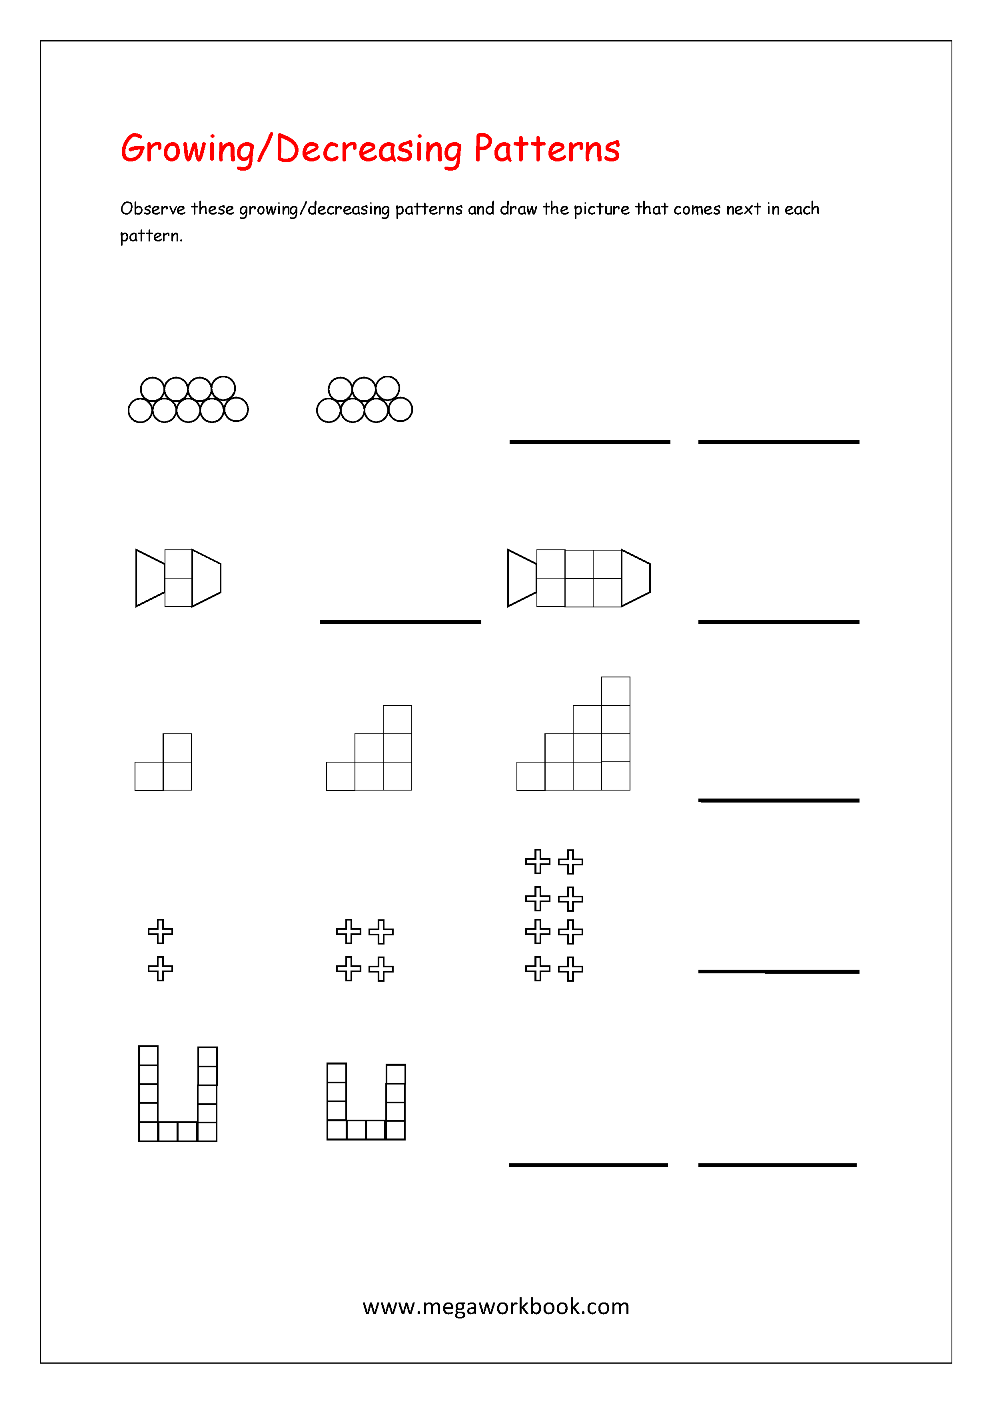 pattern worksheets for kindergarten color patterns growing patterns decreasing patterns. Black Bedroom Furniture Sets. Home Design Ideas